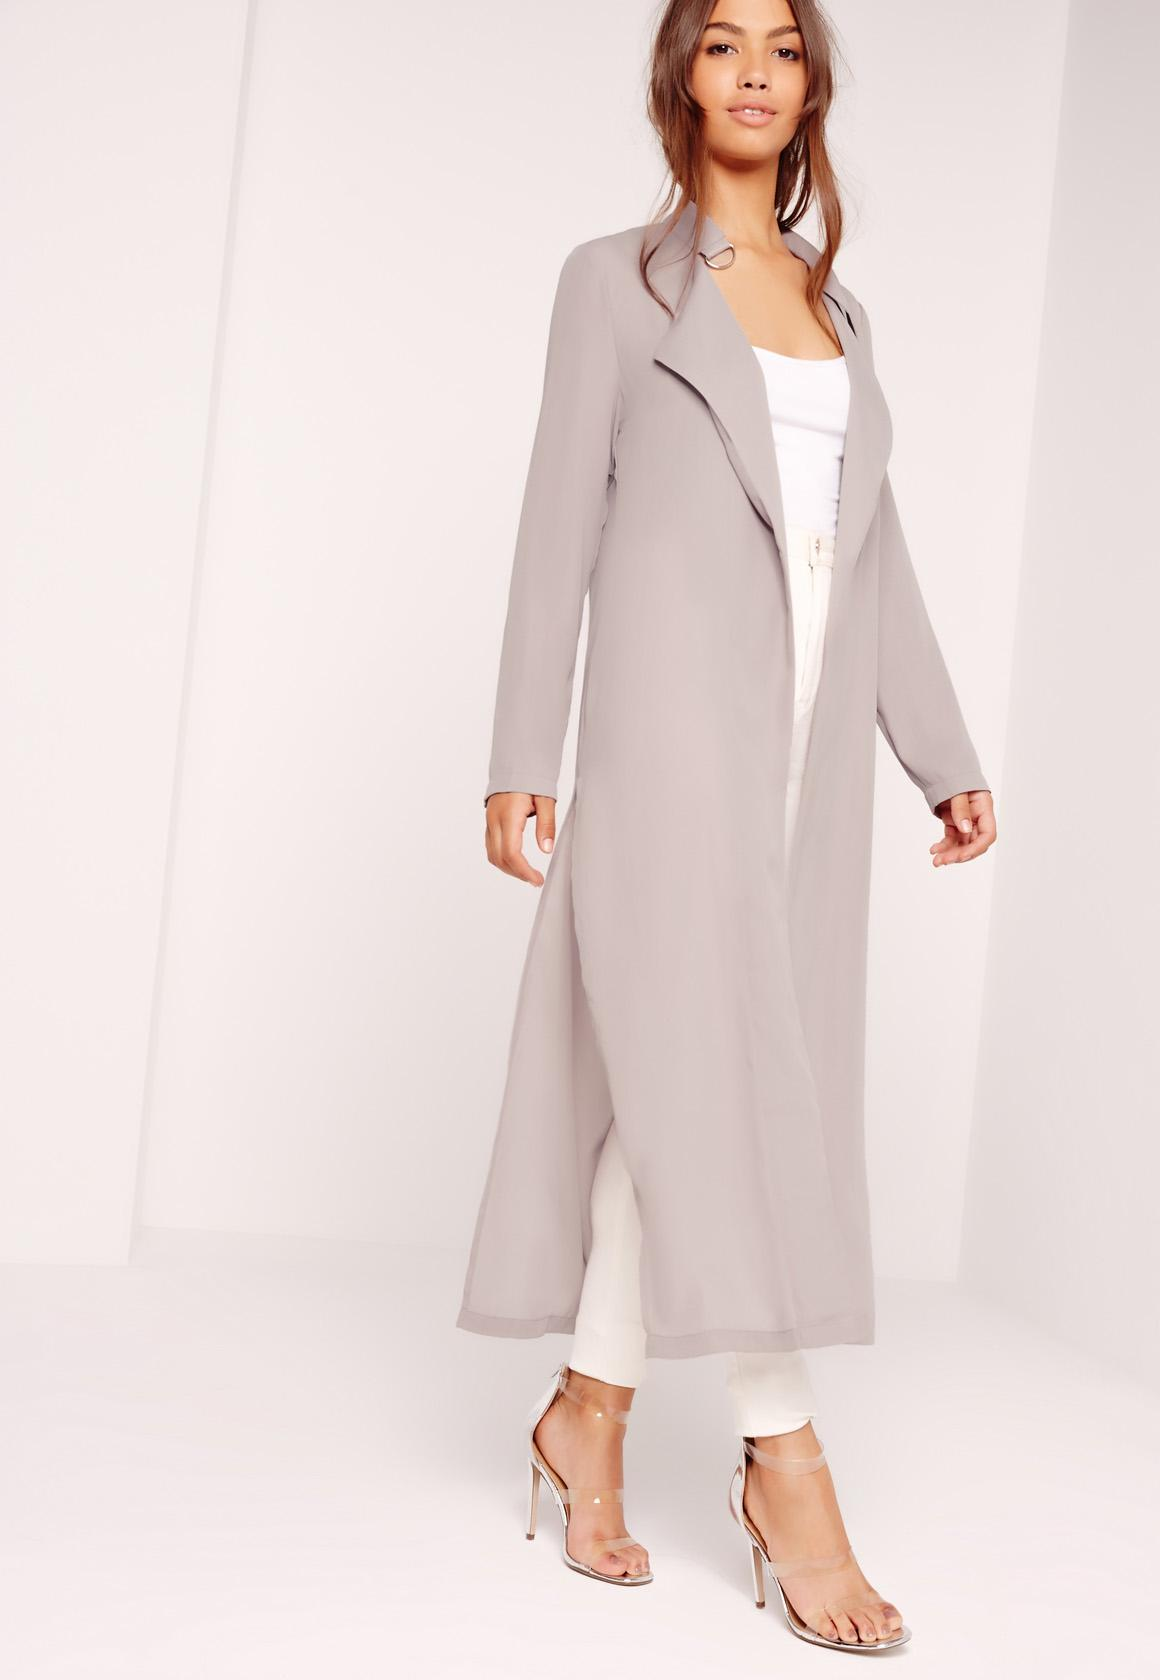 Tie Choker Chiffon Duster Coat Grey | Missguided Ireland